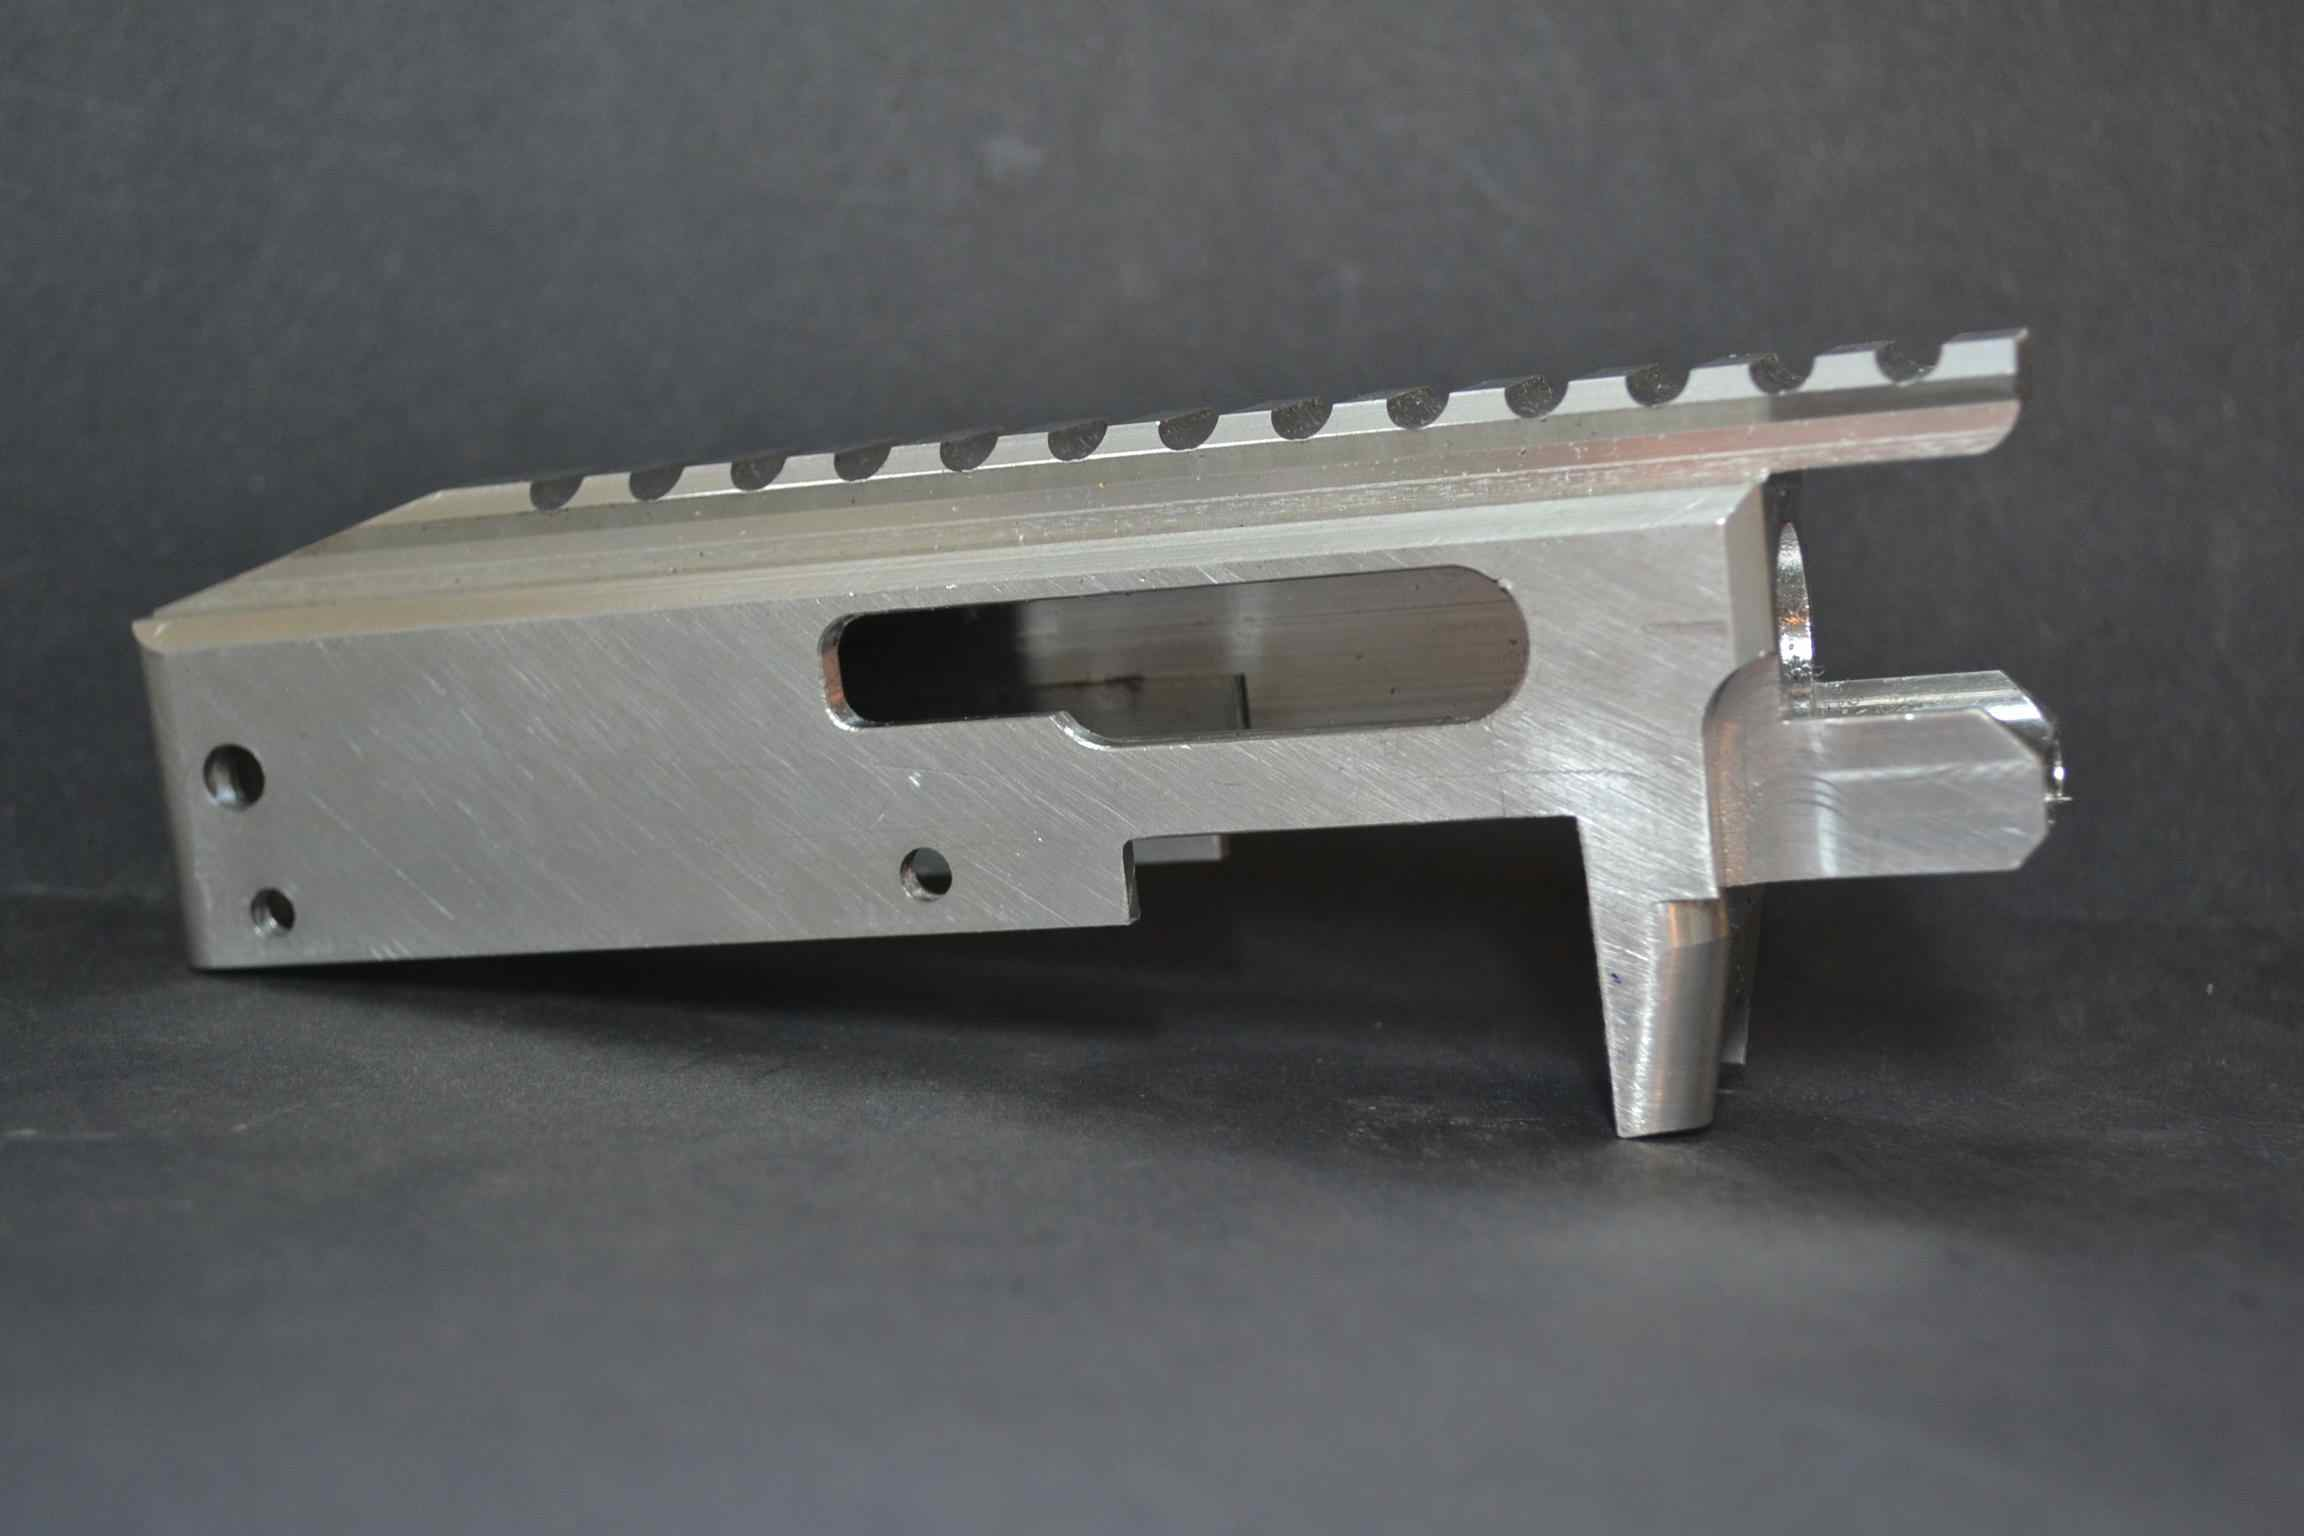 Completing an 80% 10/22 Select Fire LLC RAZOR Semiautomatic Receiver